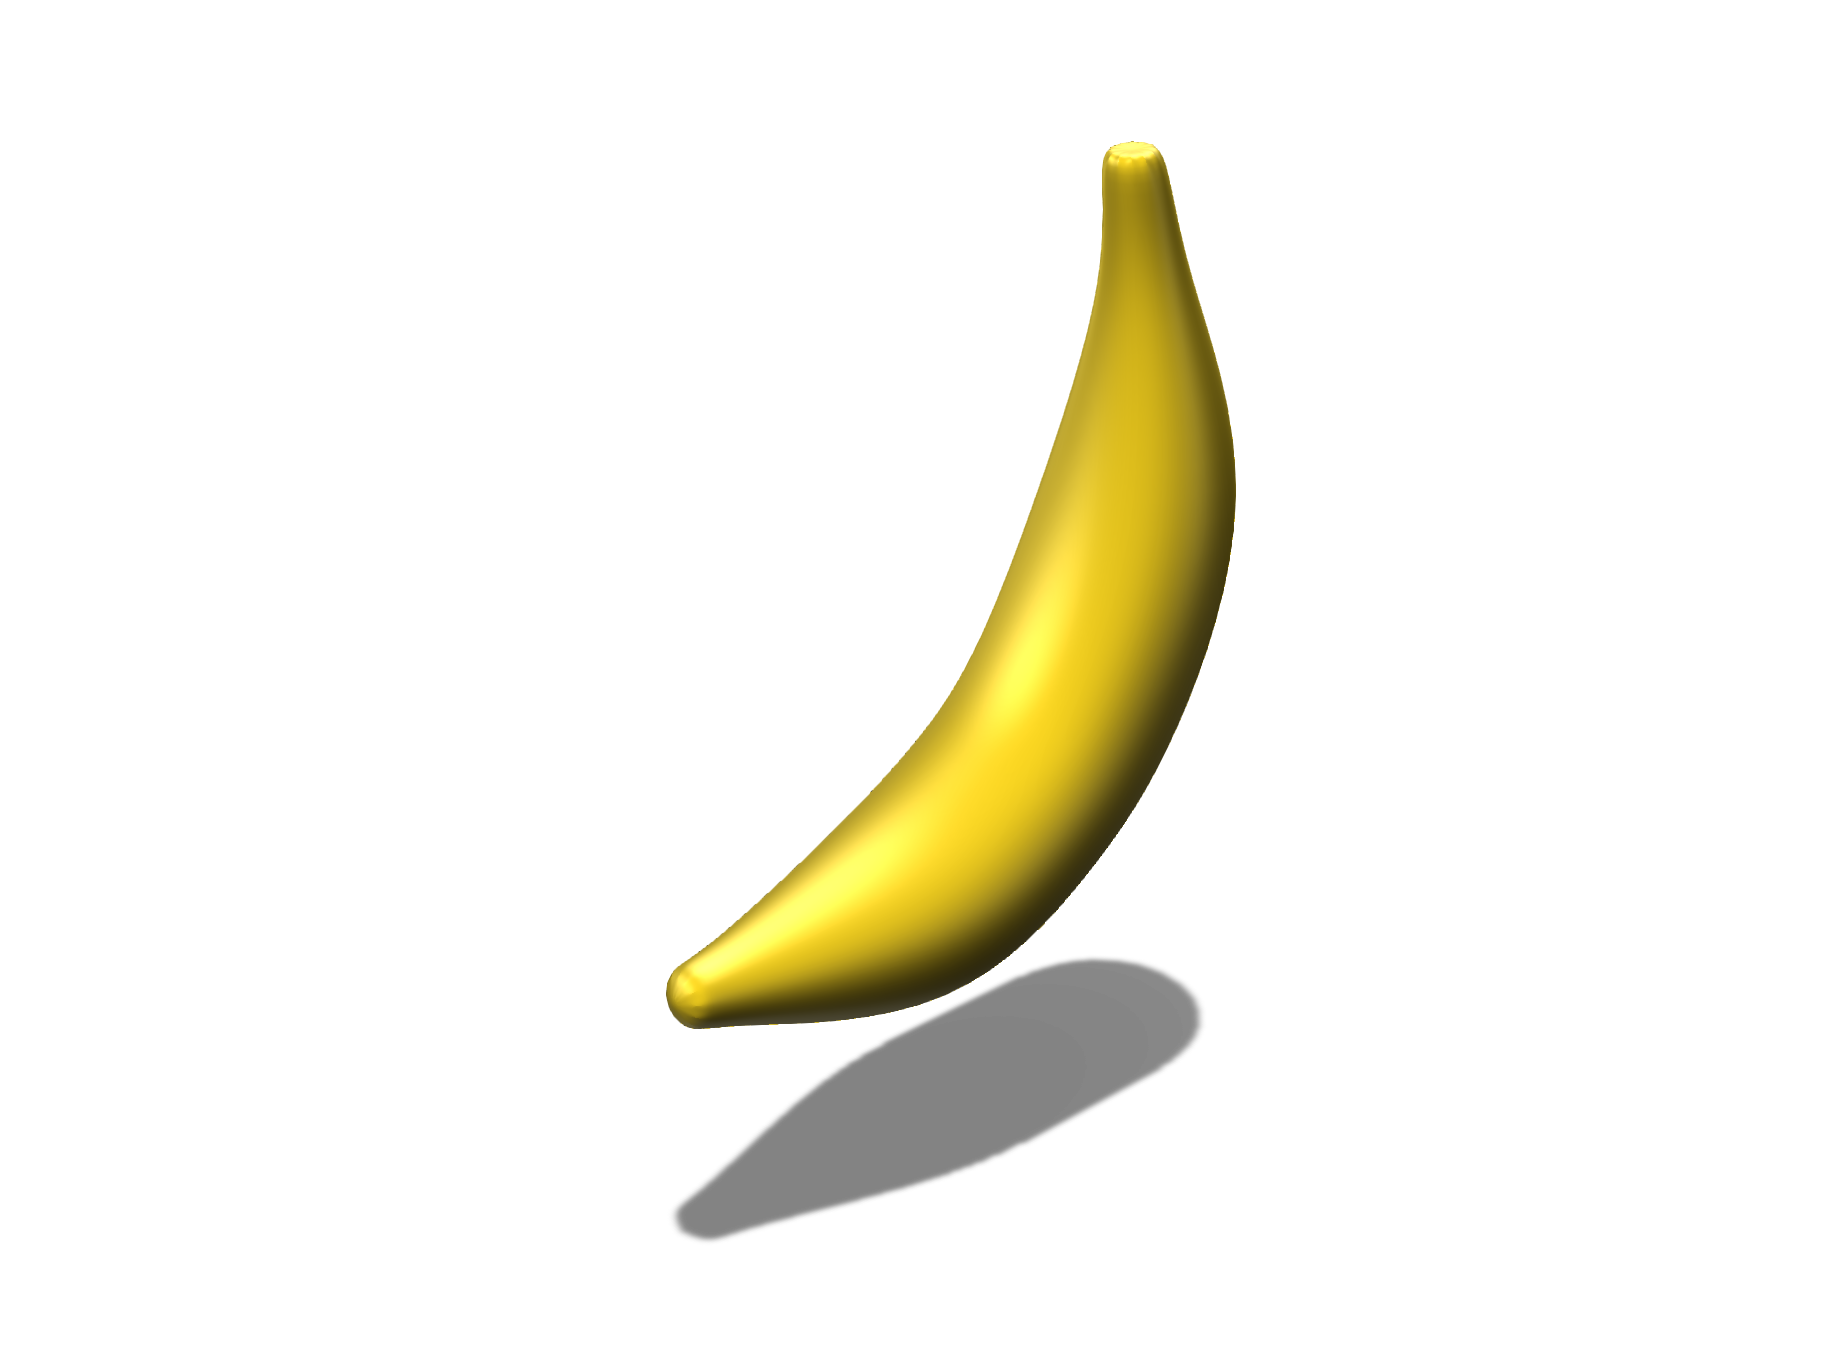 A Banana - 3D design by Dylan Goddard on Nov 17, 2017